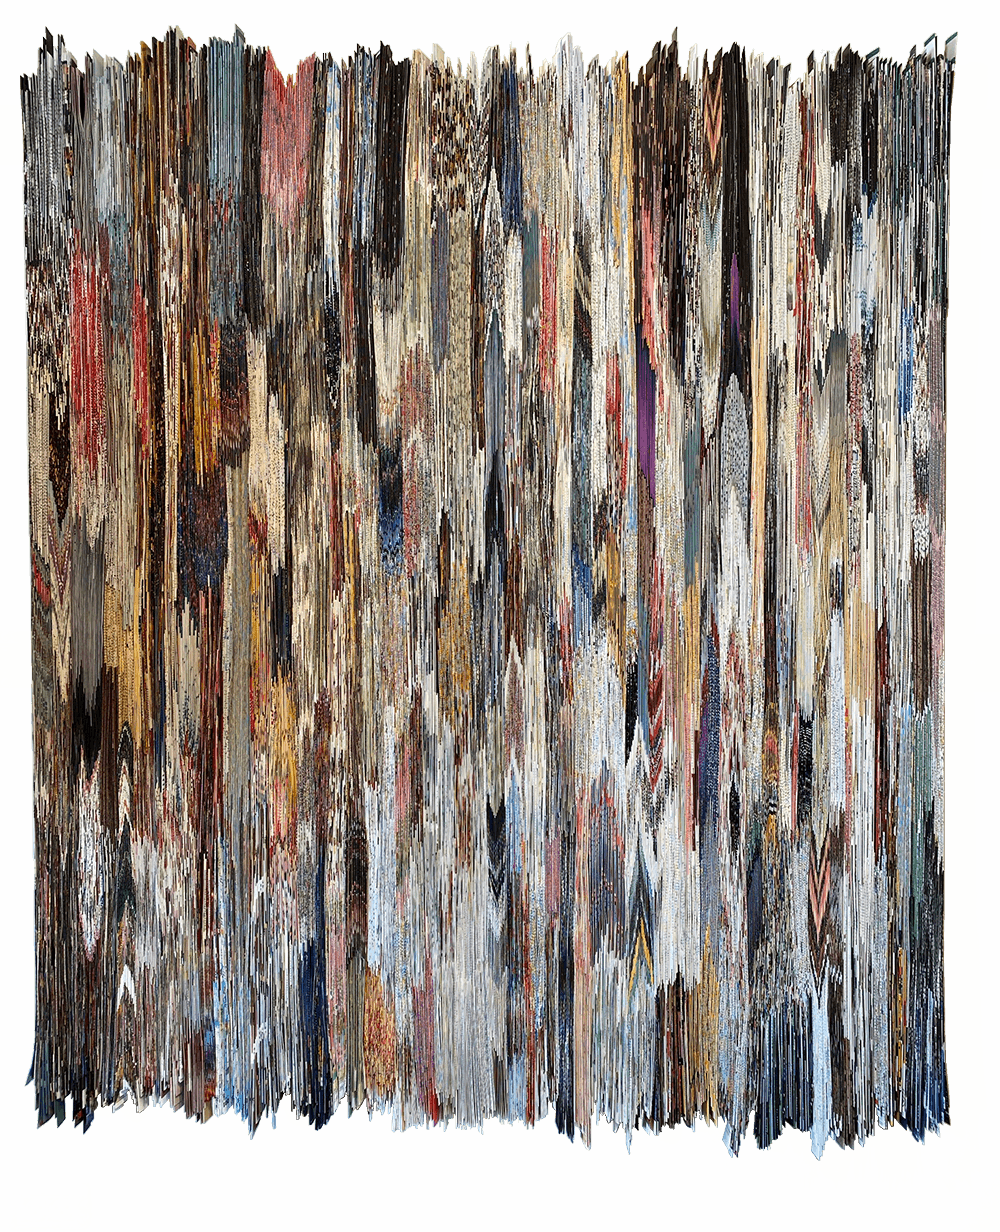 Lost in Colors #2 | Folded Paper | 150x185cm